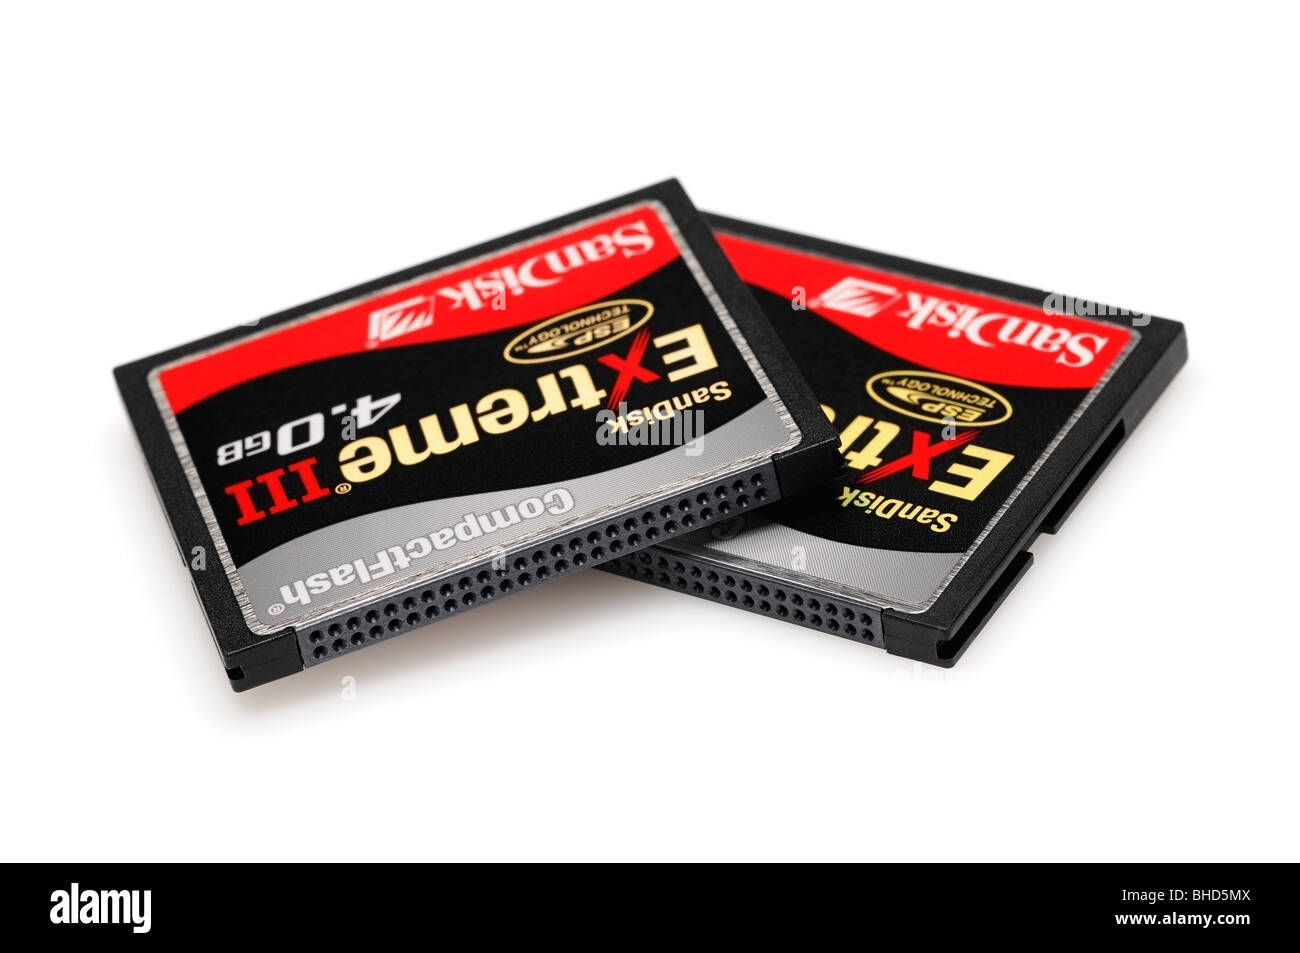 Compactflash Memory Cards - Stock Image